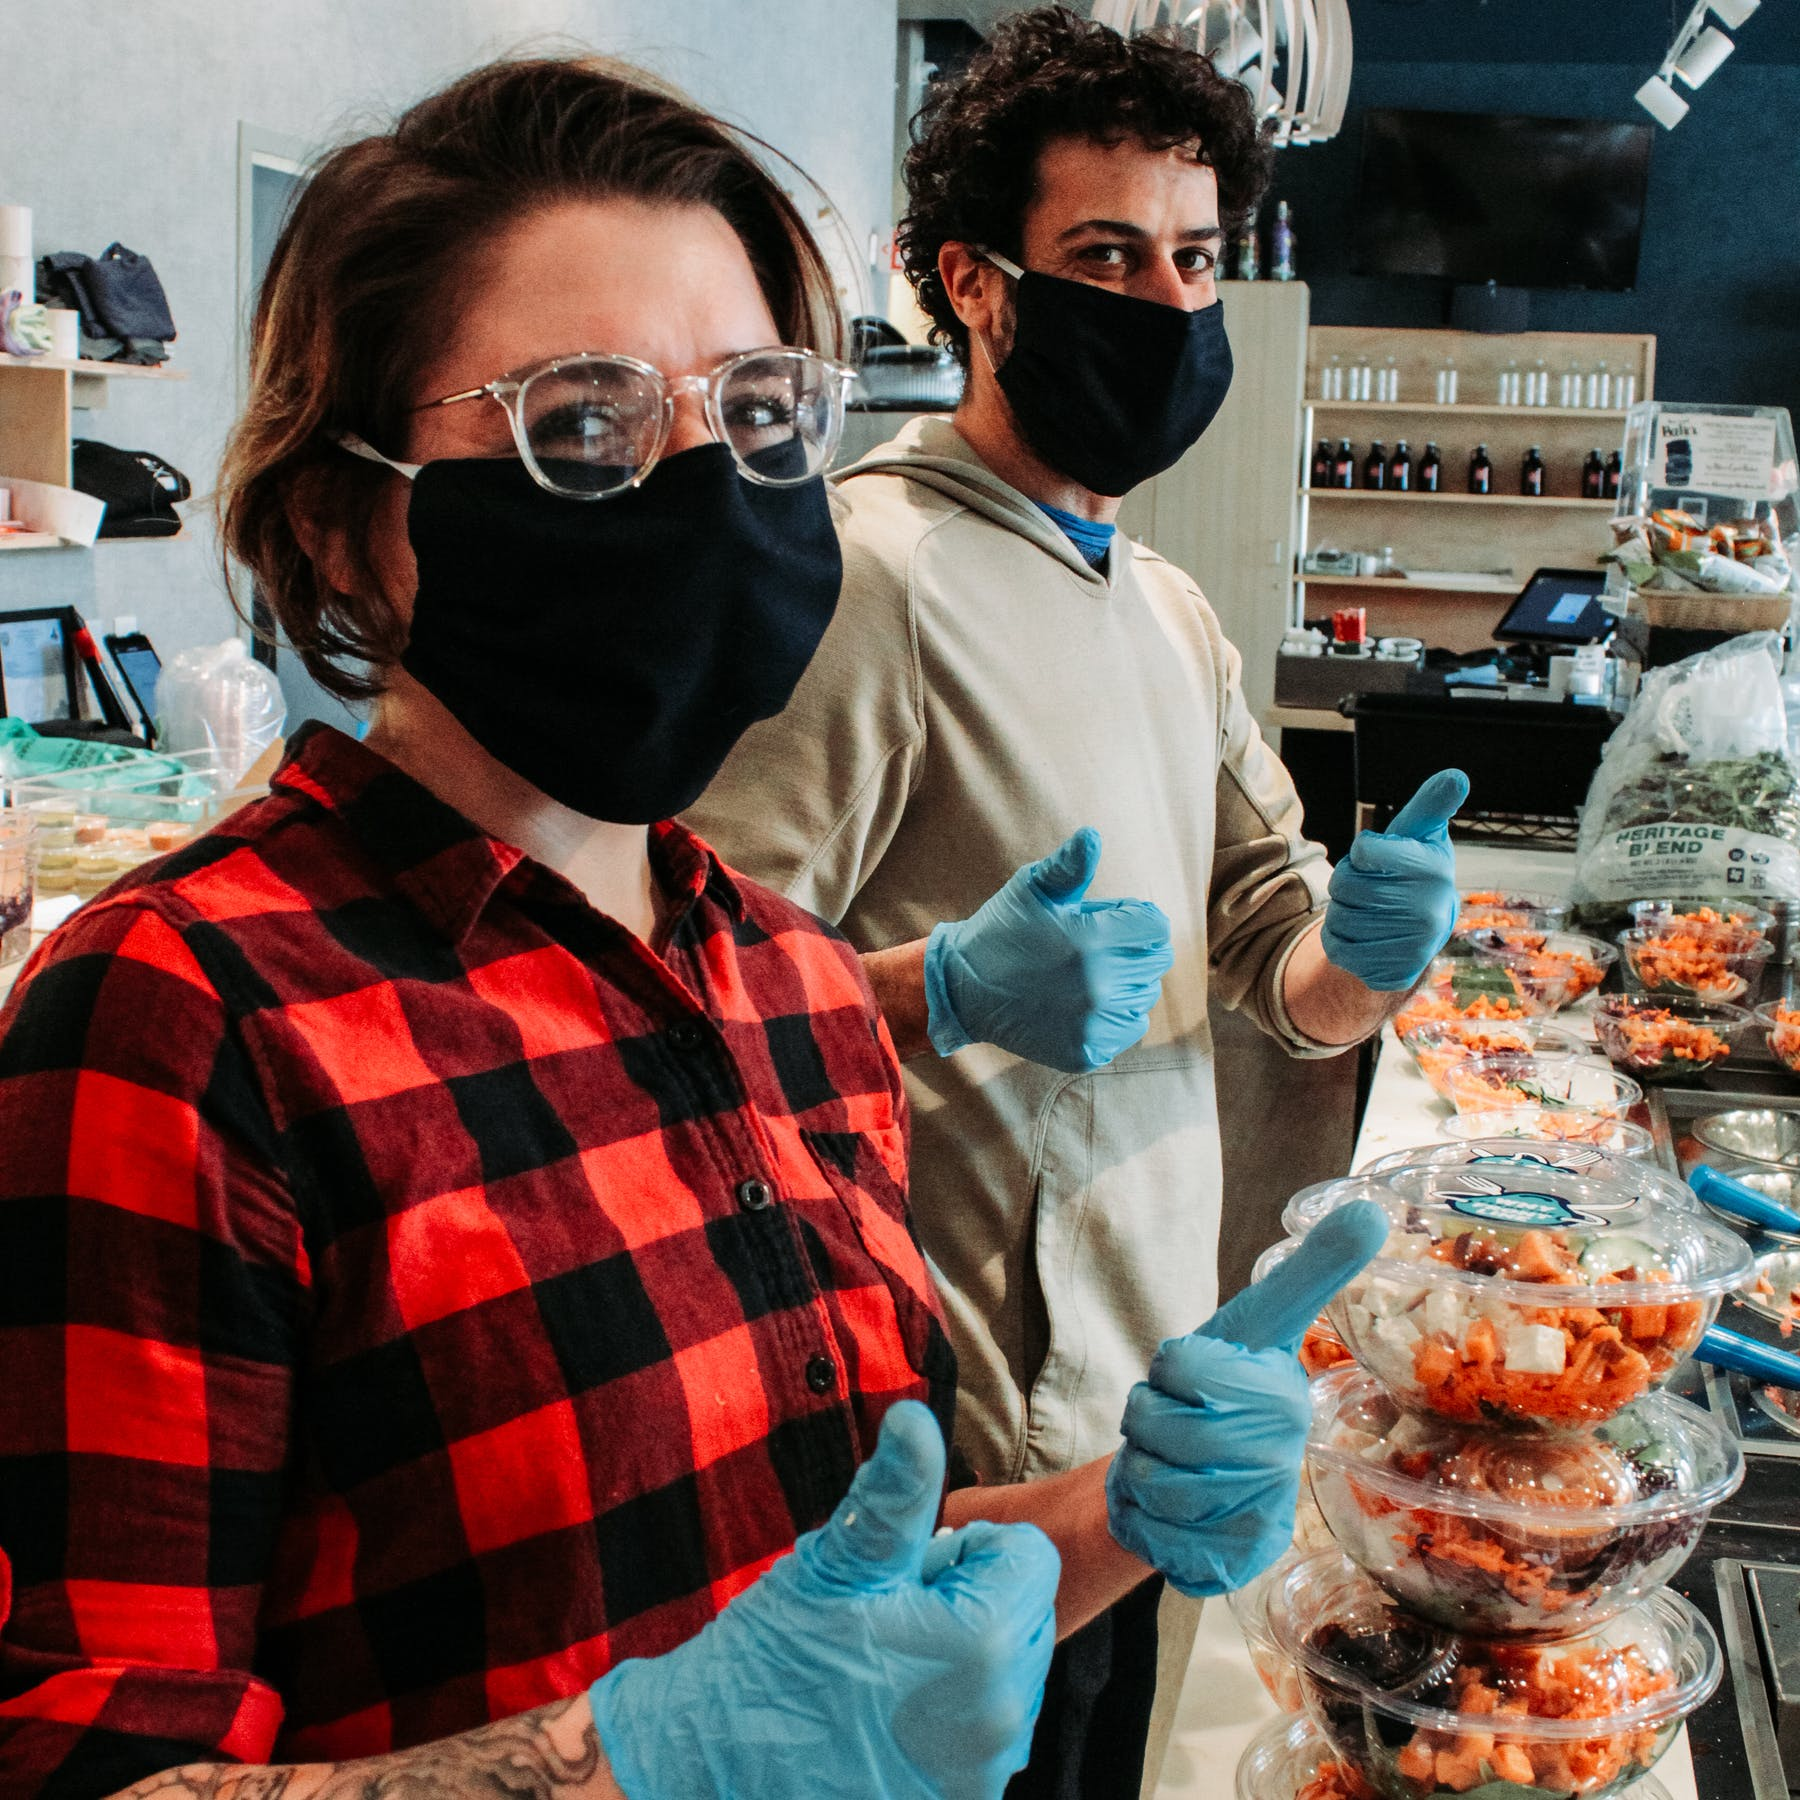 Employees wear mask and gloves to ensure your protection!